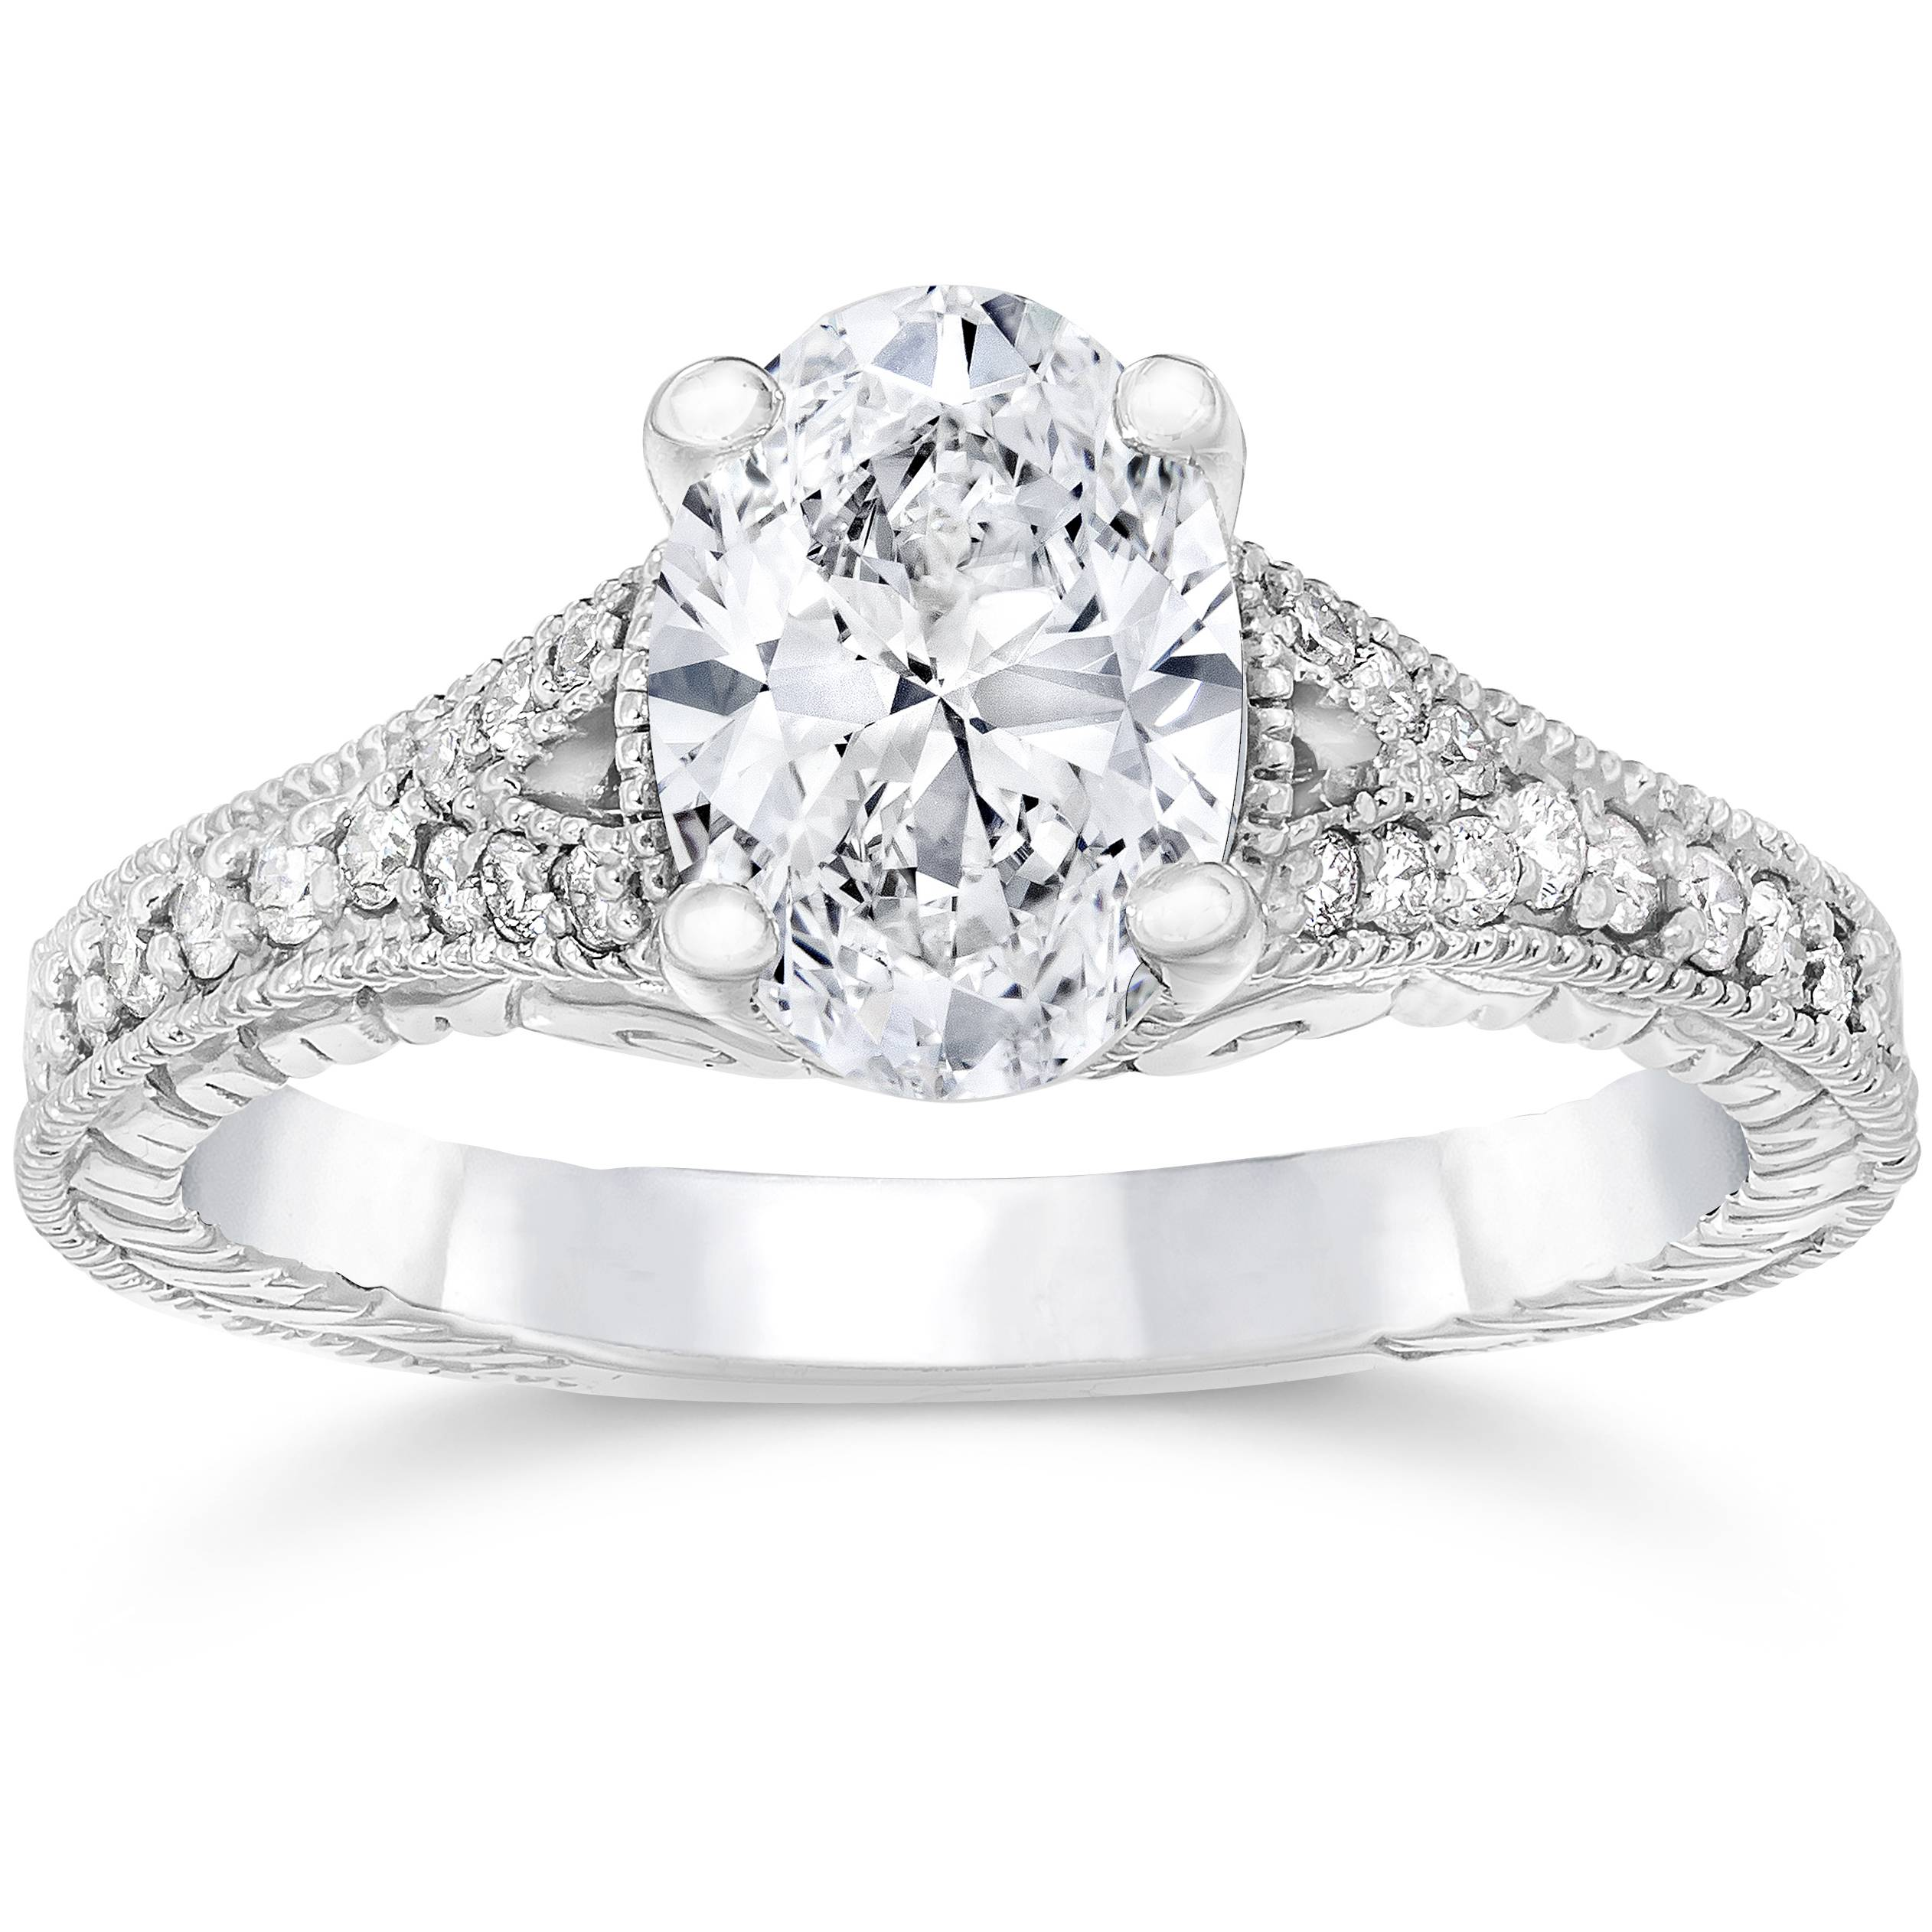 1 14ct oval diamond vintage engagement ring solitaire